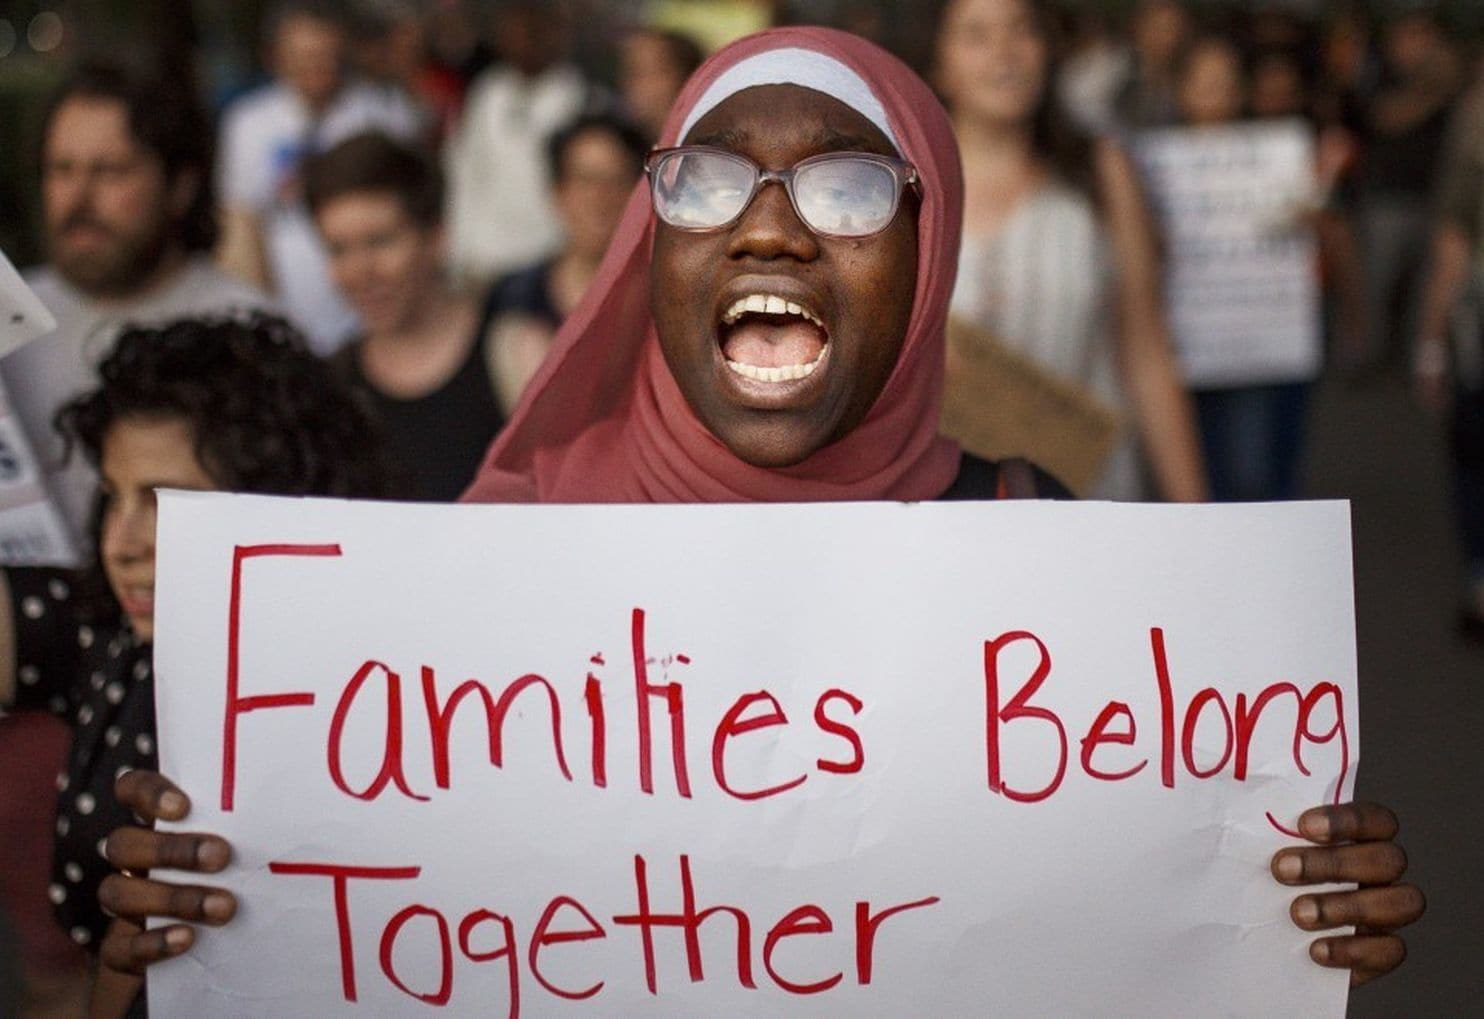 The Muslim Ban Expands the Cruel Policy of Family Separation